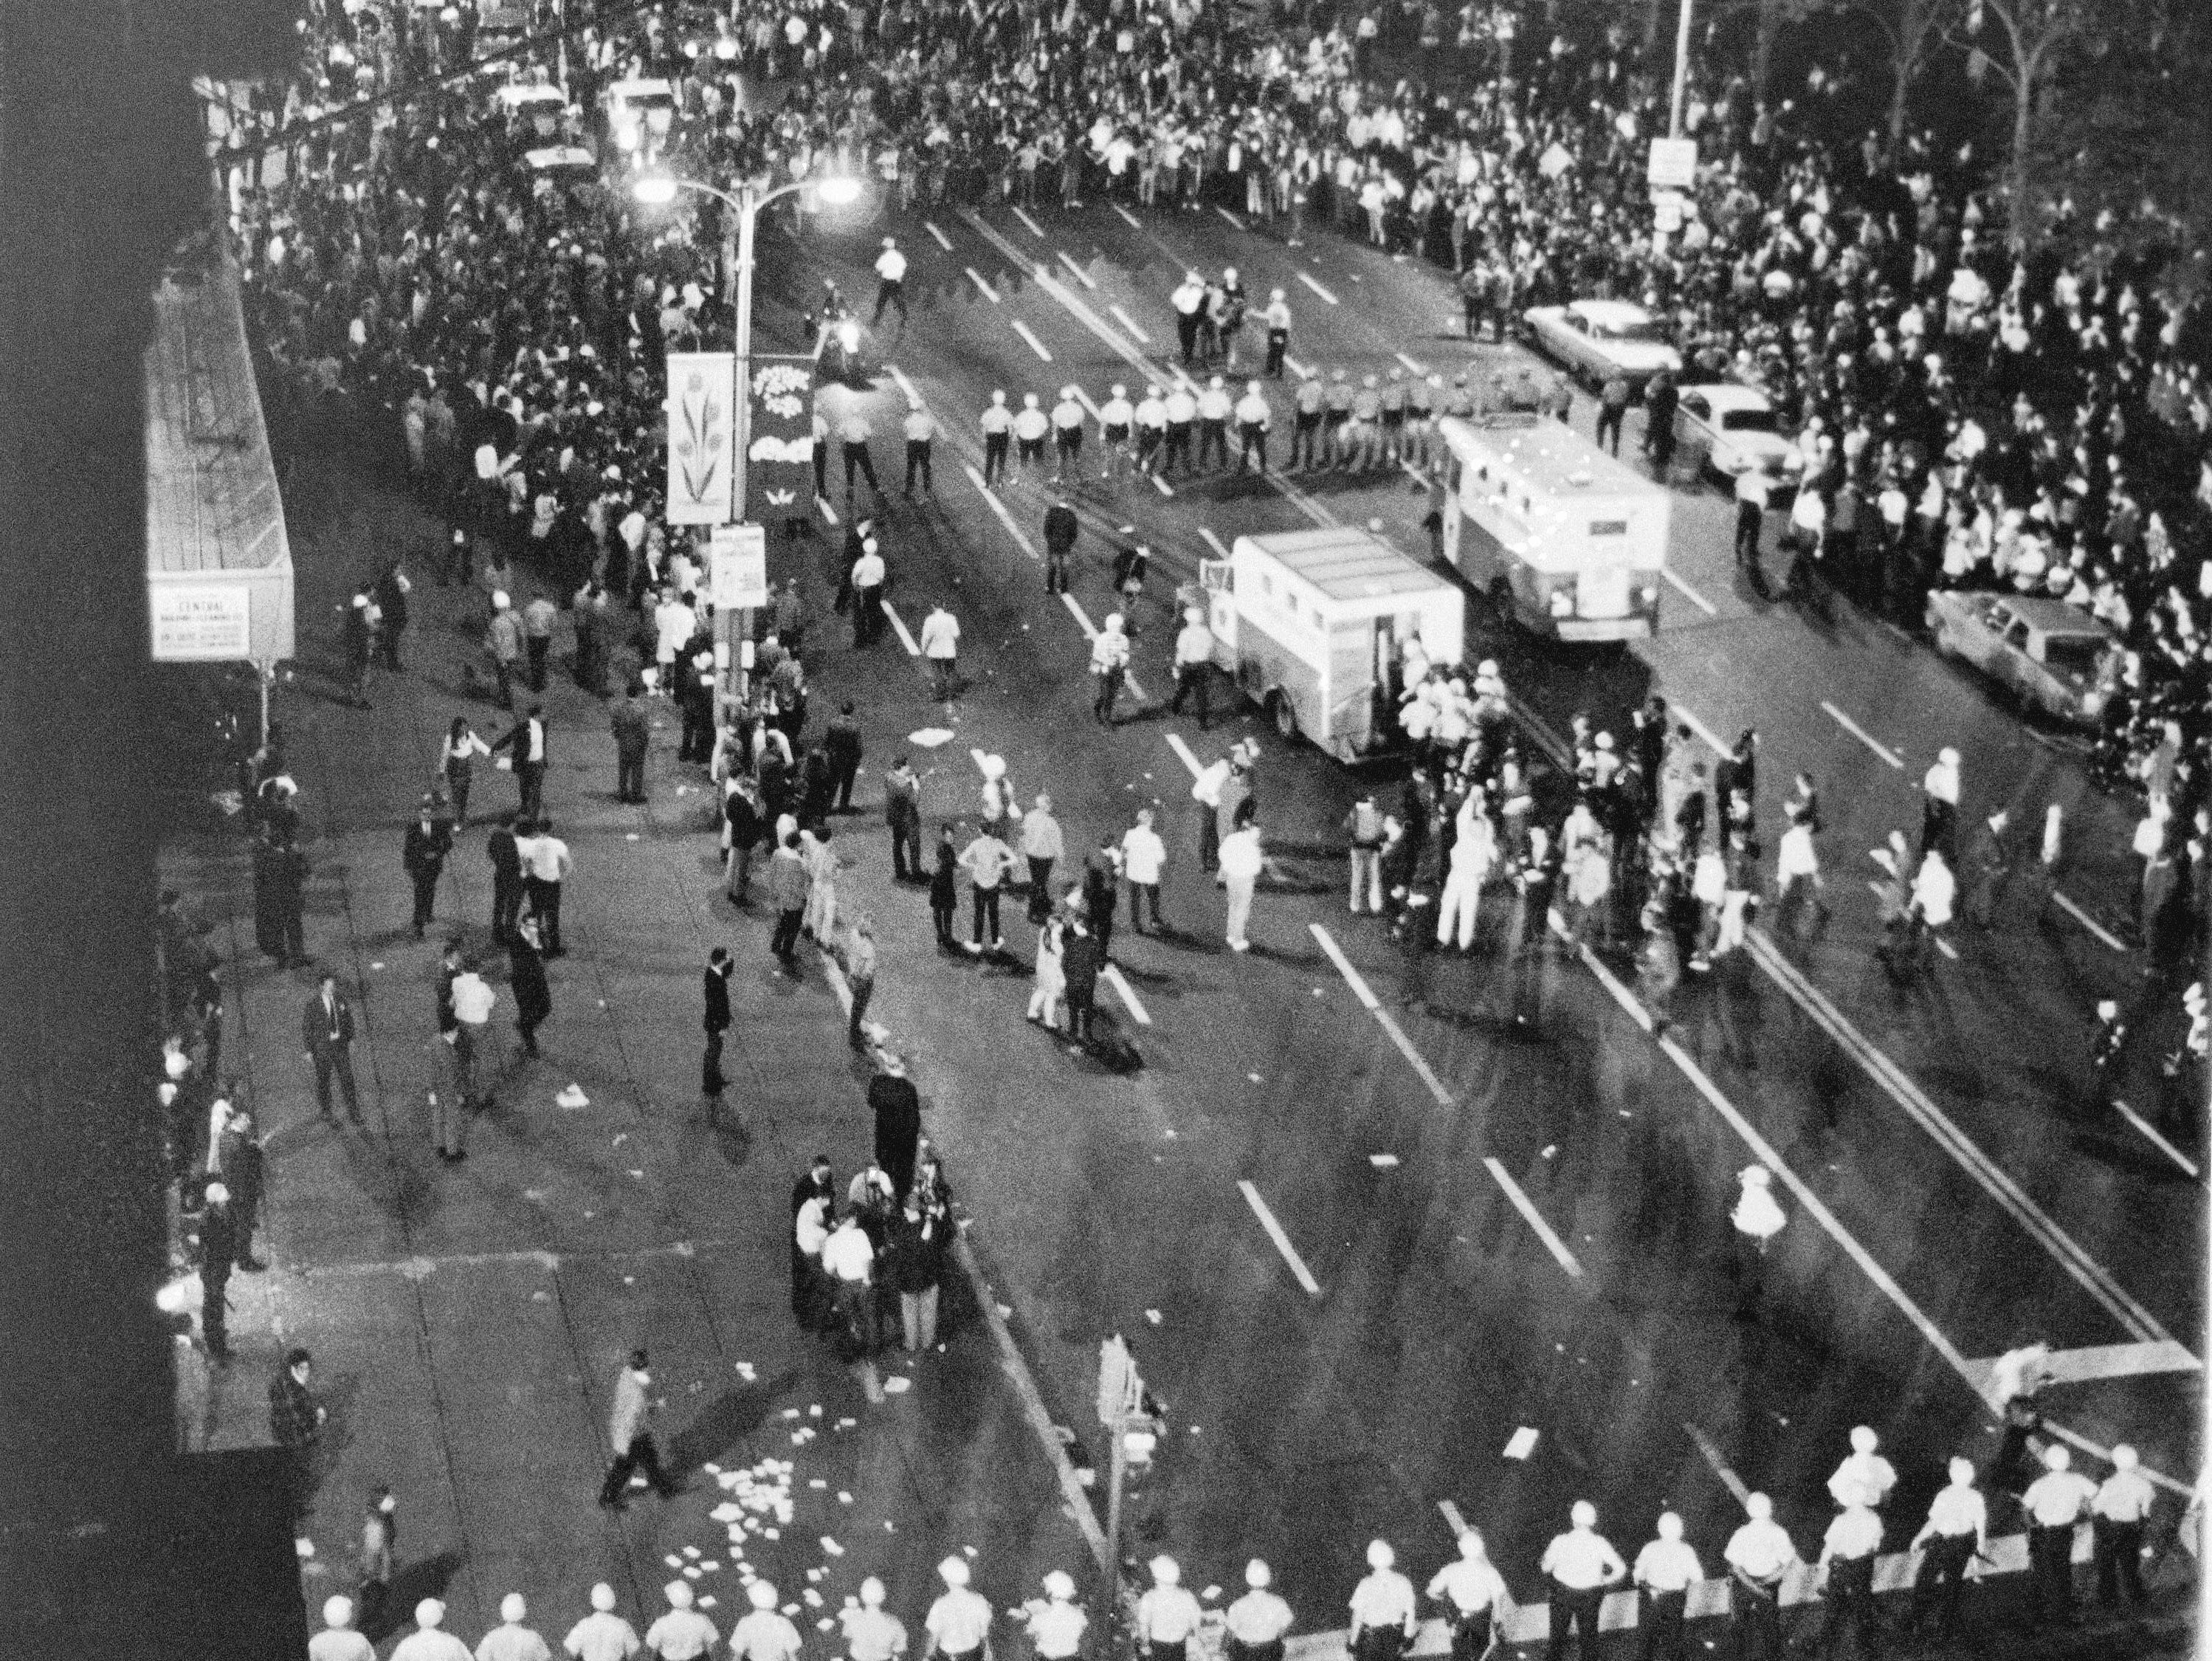 As demonstrators are placed into police vans, Chicago police form a battle line against thousands of others during a melee in Chicago on Aug. 28, 1968. The police are lined up and looking north on Michigan Avenue at the Conrad Hilton hotel, the headquarters for the Democratic National Convention.